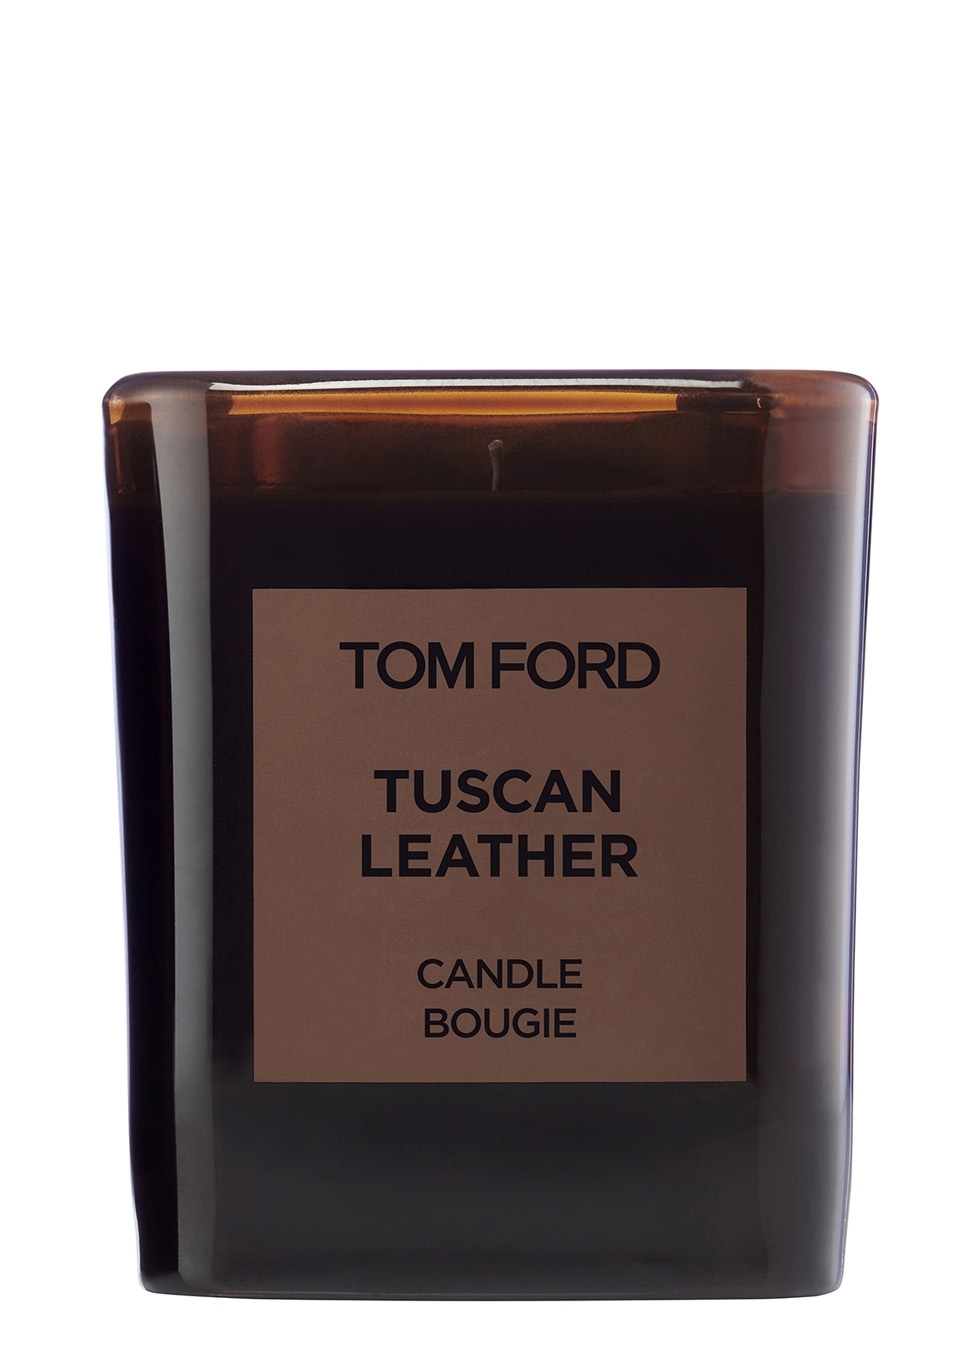 tom ford tuscan leather candle harvey nichols. Black Bedroom Furniture Sets. Home Design Ideas